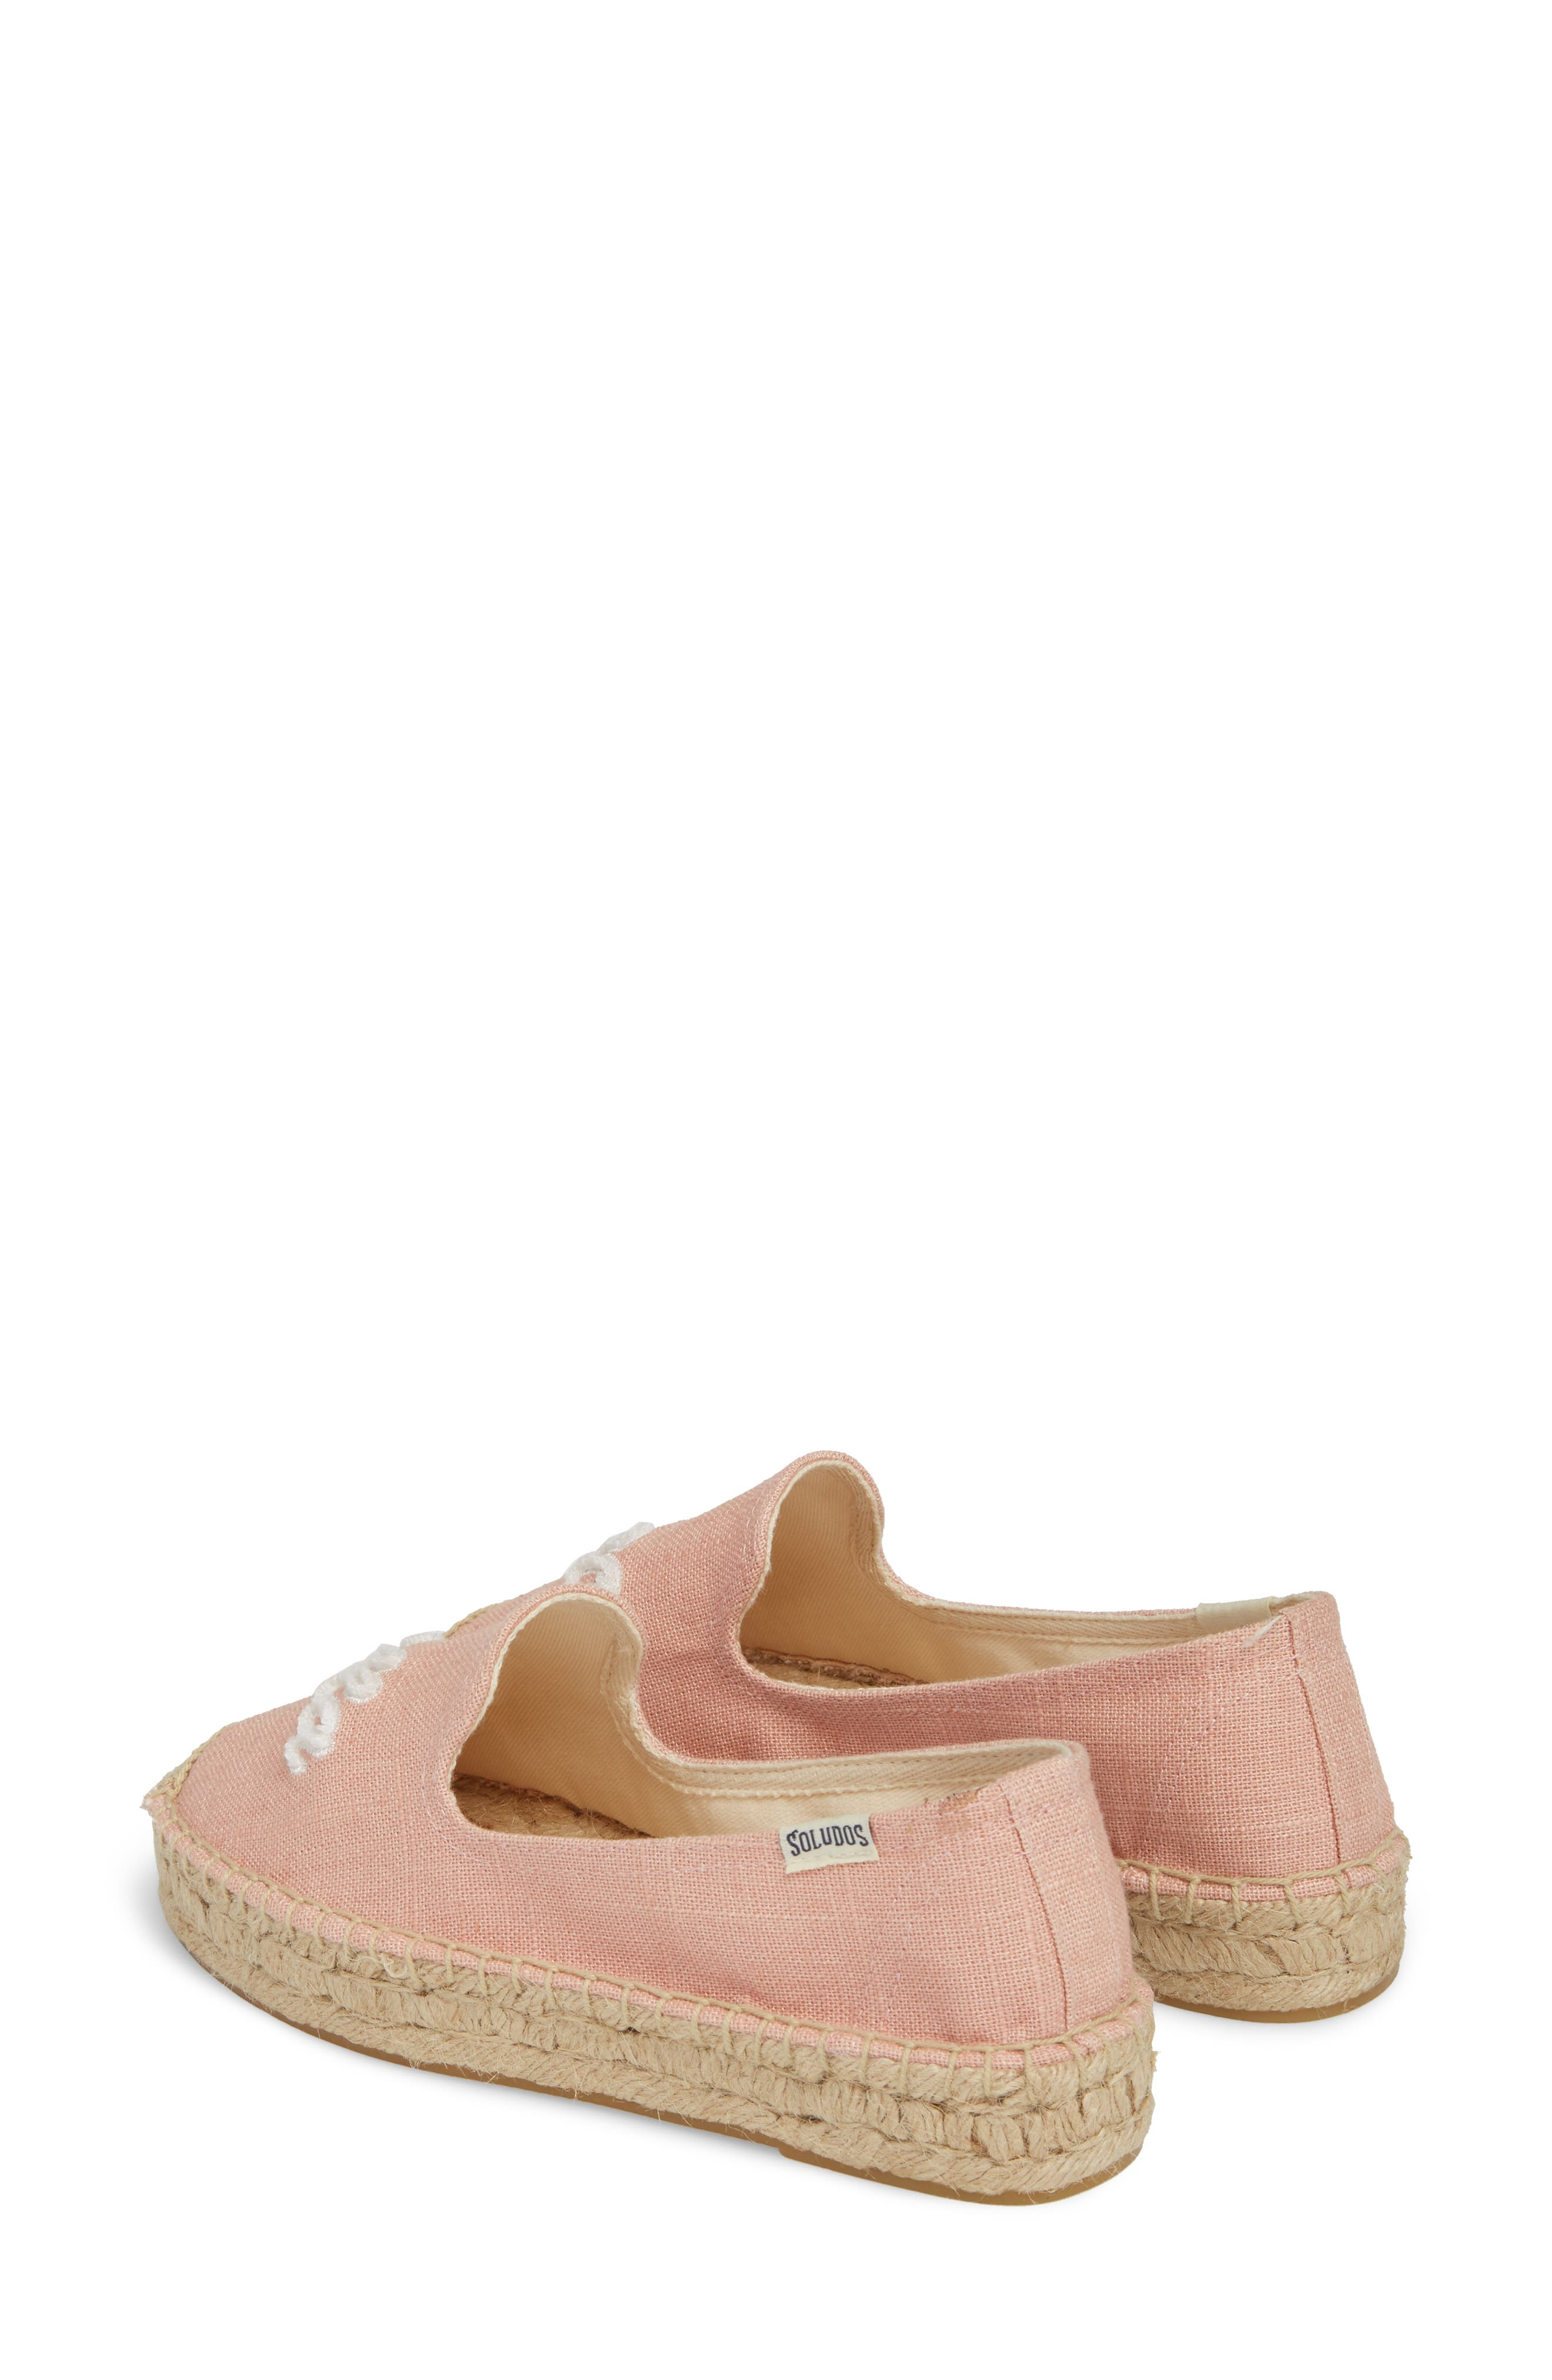 Alternate Image 2  - Soludos Ciao Bella Espadrille Flat (Women)